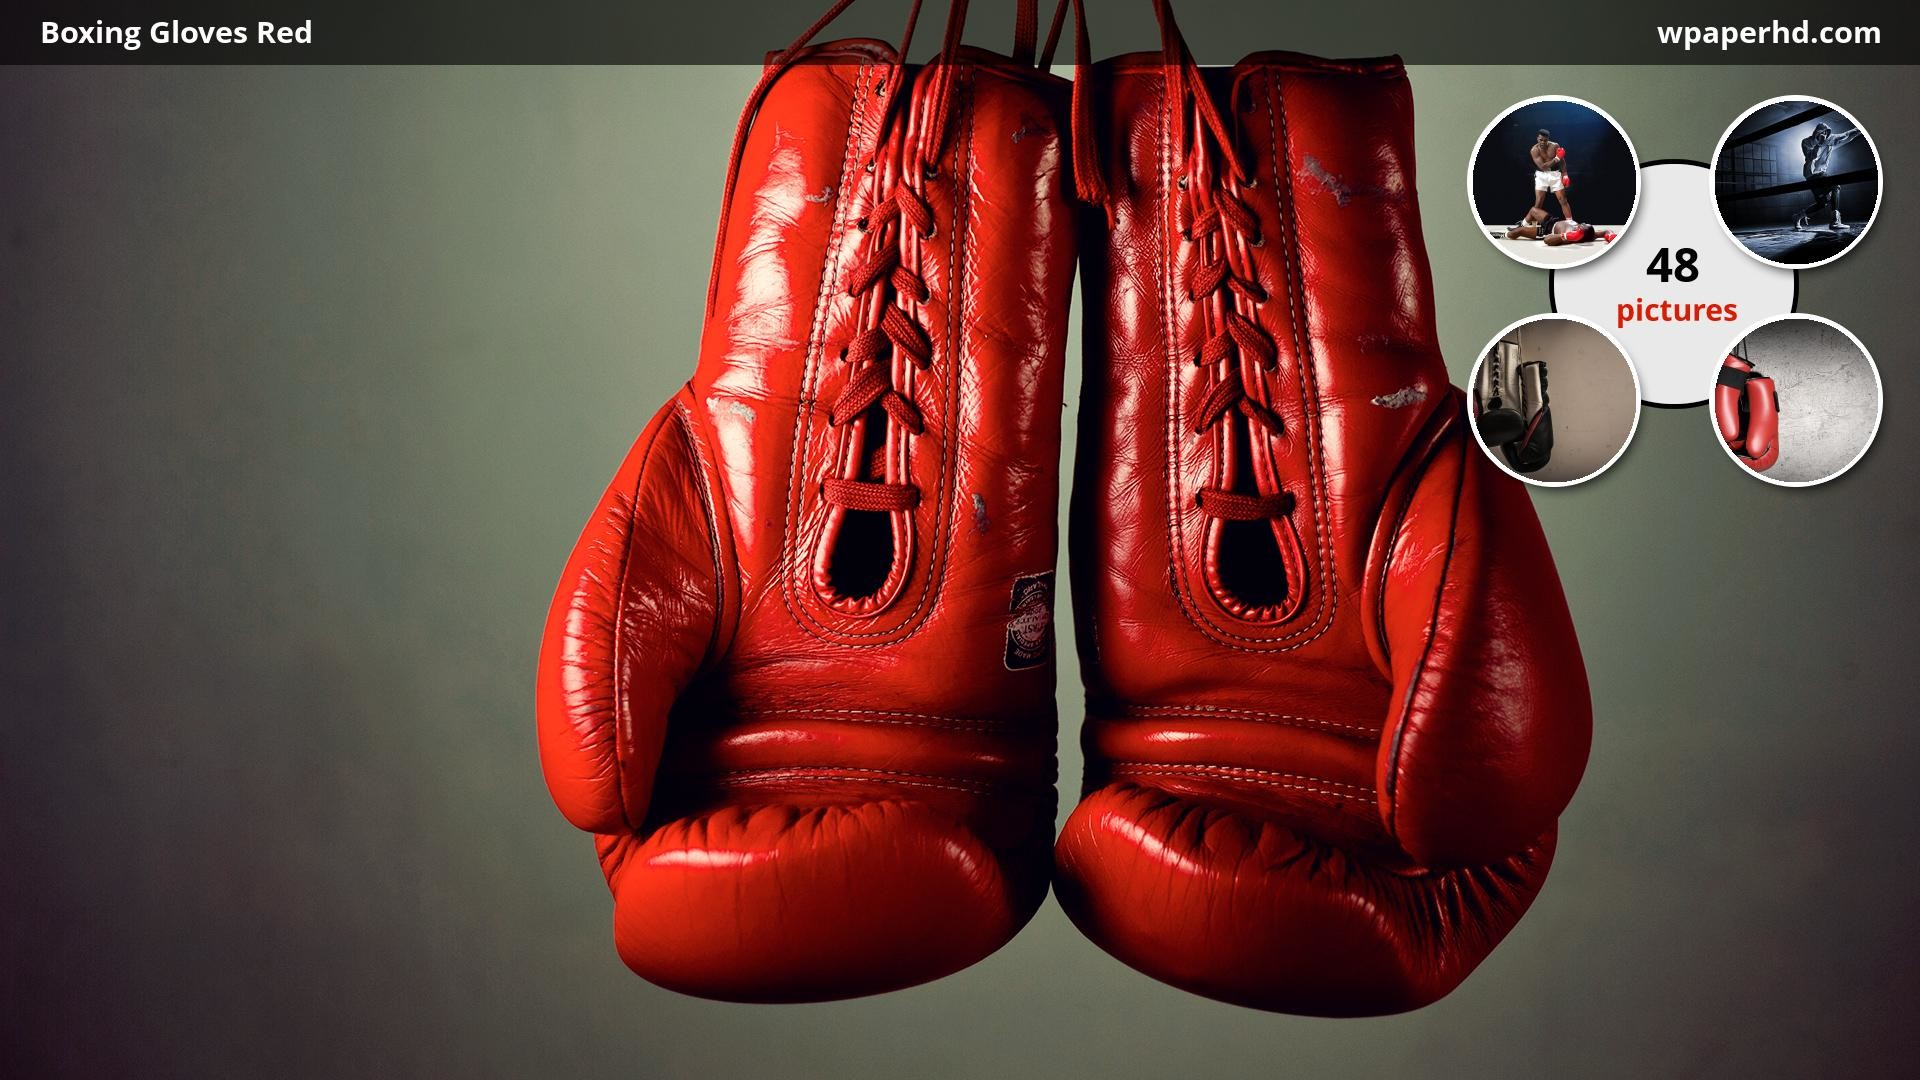 Res: 1920x1080, You are on page with Boxing Gloves Red wallpaper, where you can download  this picture in Original size and ...